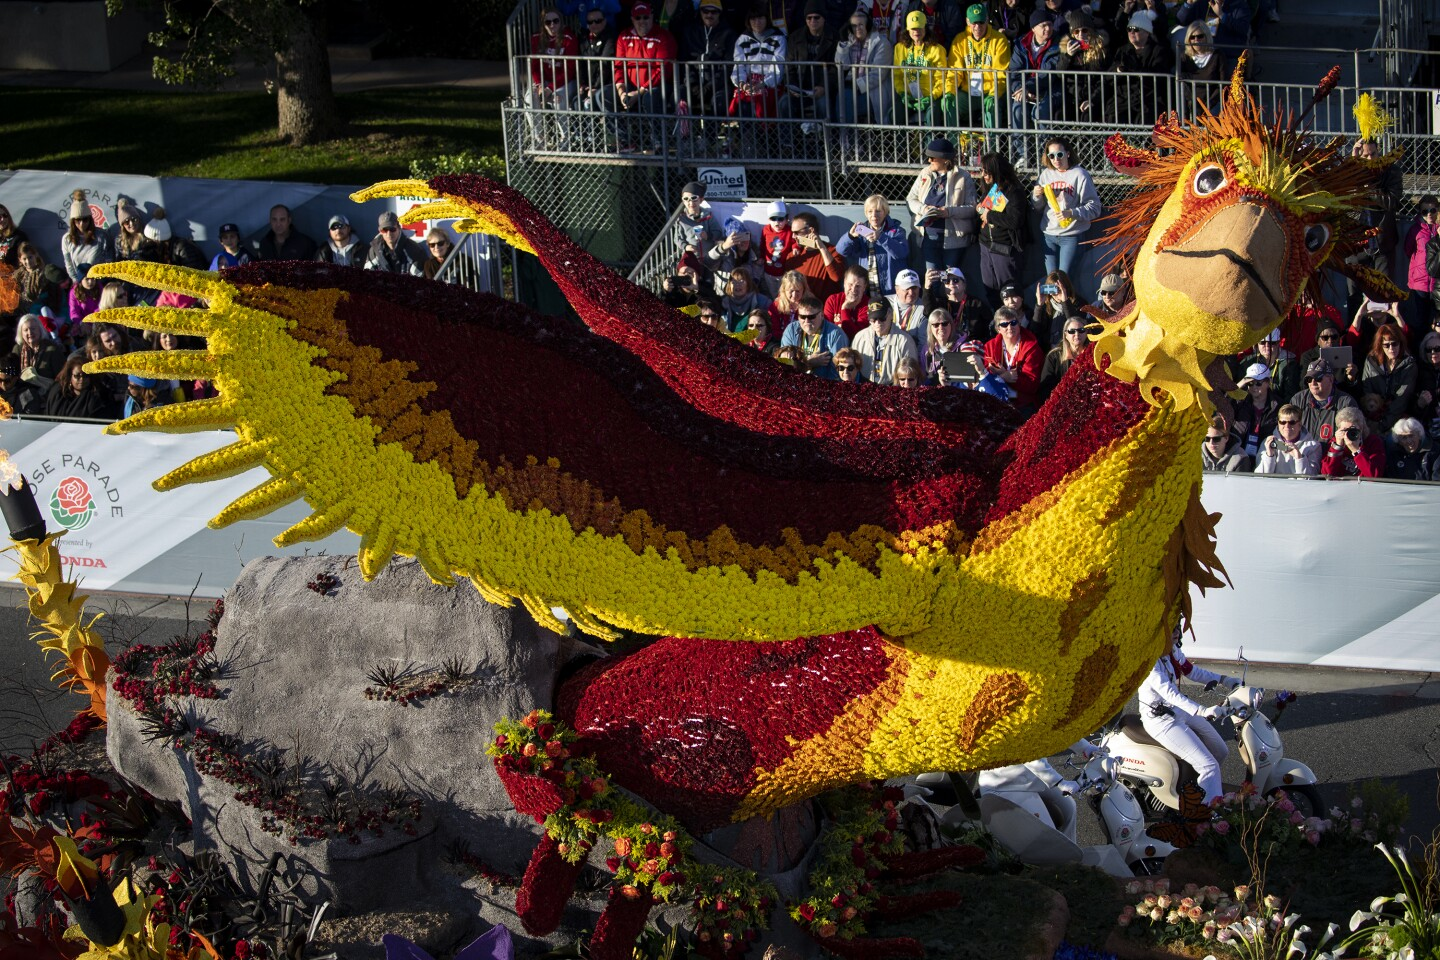 """PASADENA, CA JANUARY 1, 2020: The City of Burbank float """"Rise Up"""" during the 2020 Rose Parade in Pasadena, Calif. January 1, 2020. This year's theme, """"The Power of Hope,"""" celebrates the influence of hope. (Francine Orr/ Los Angeles Times)"""